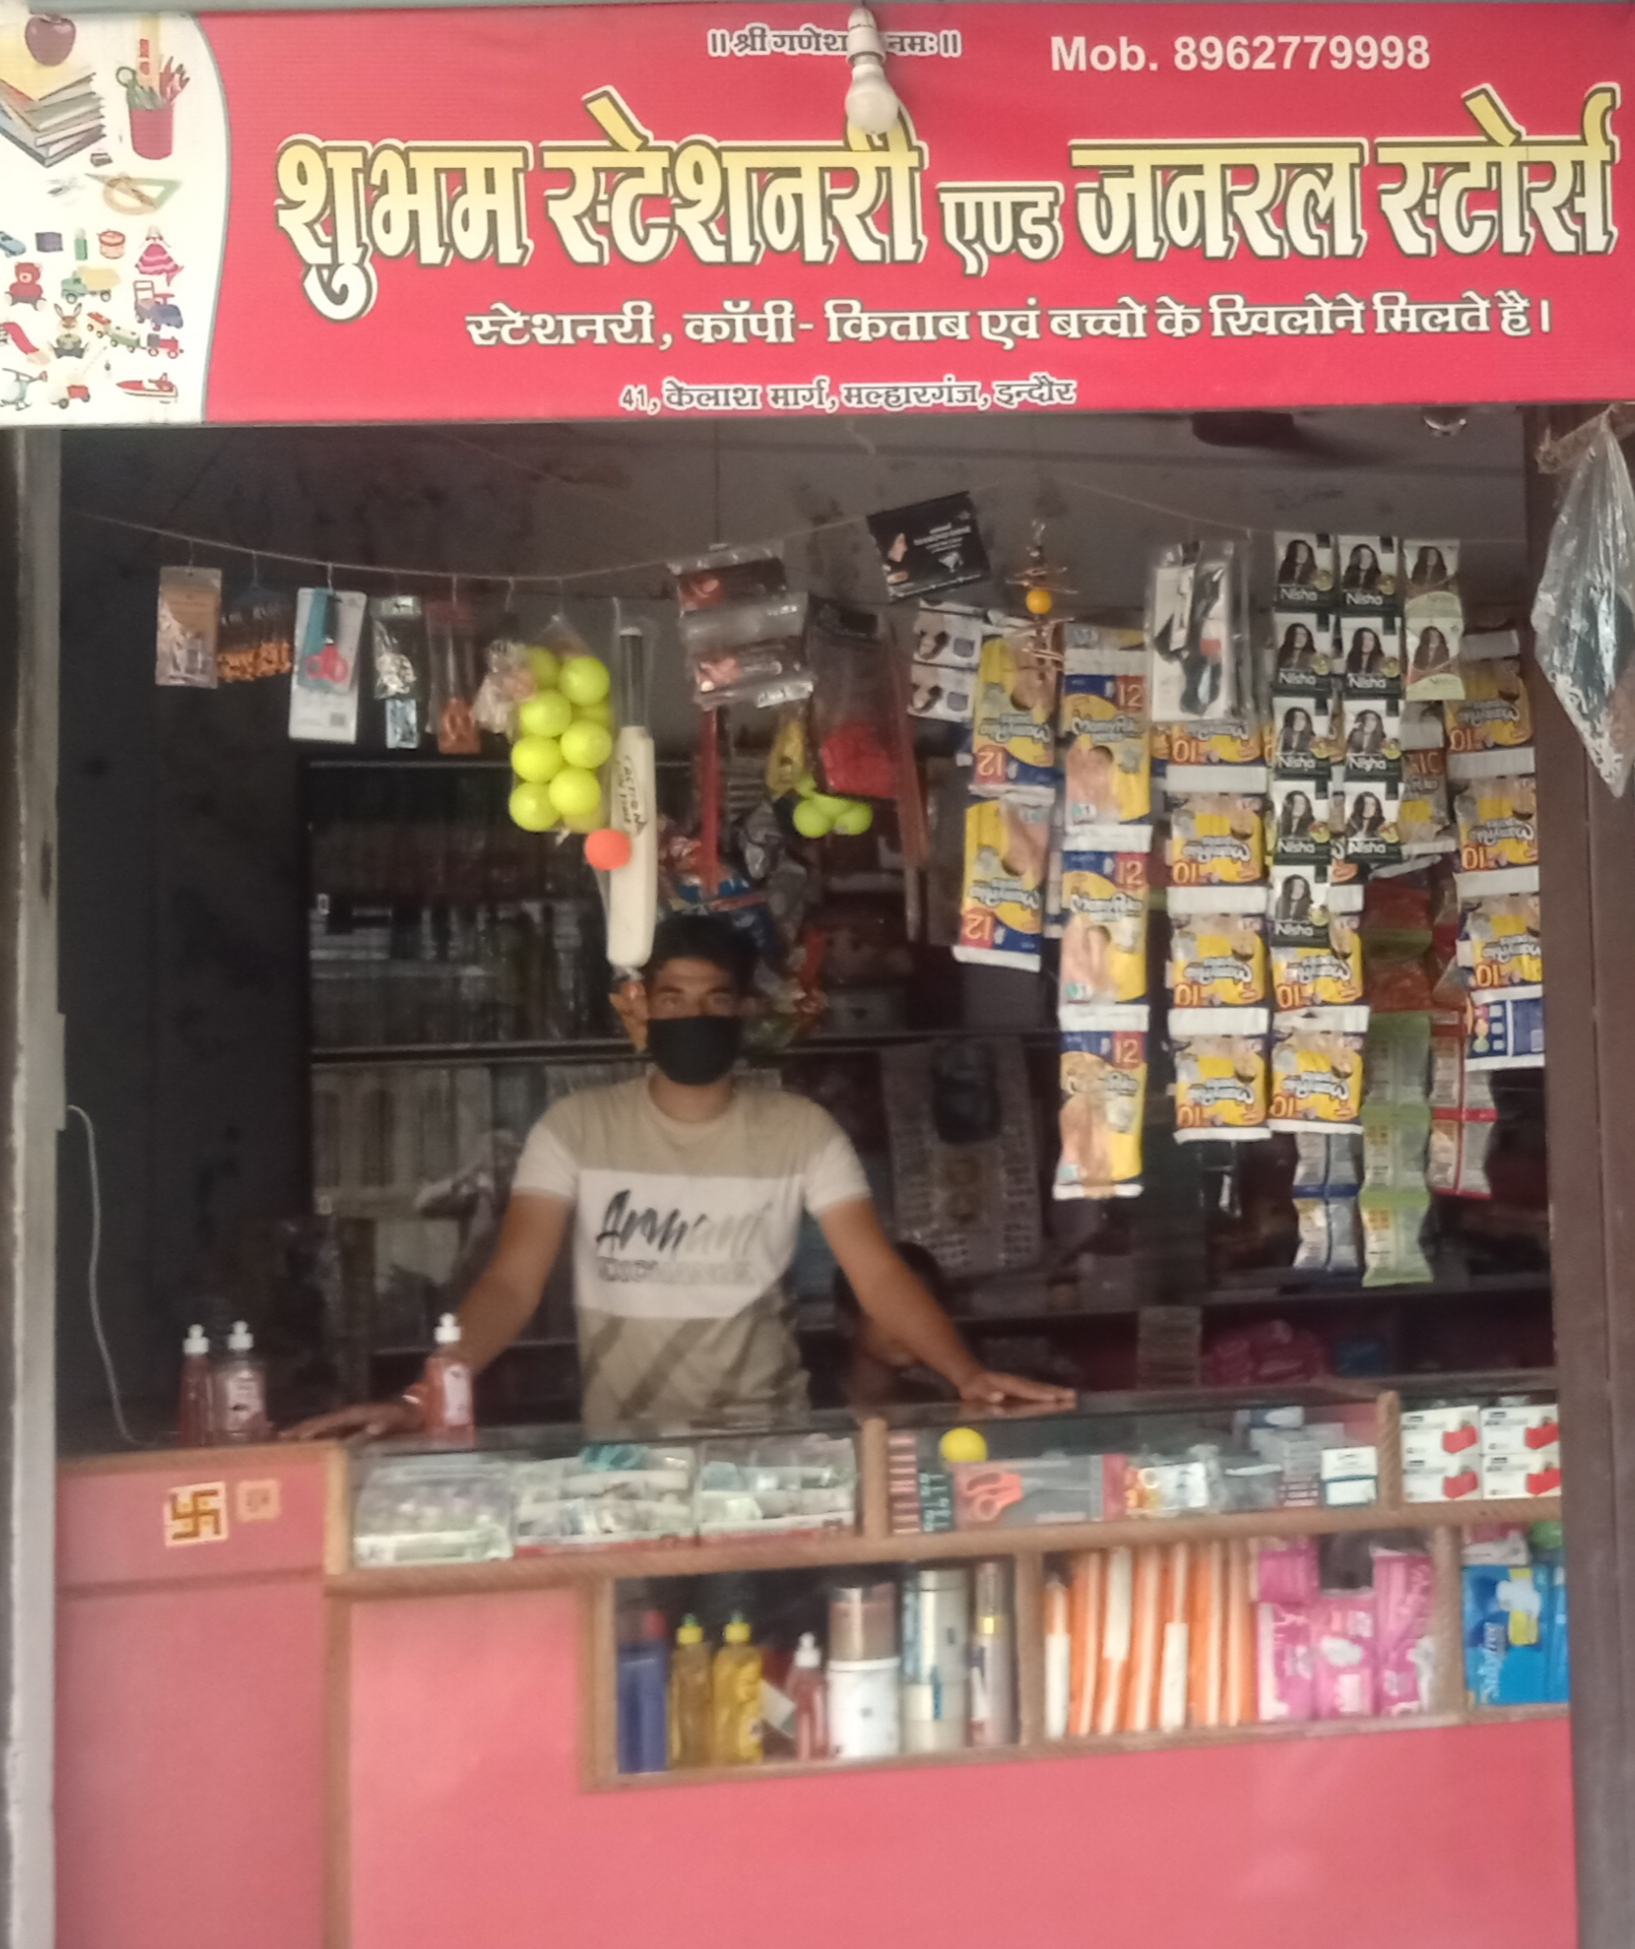 shubham srationery and general store